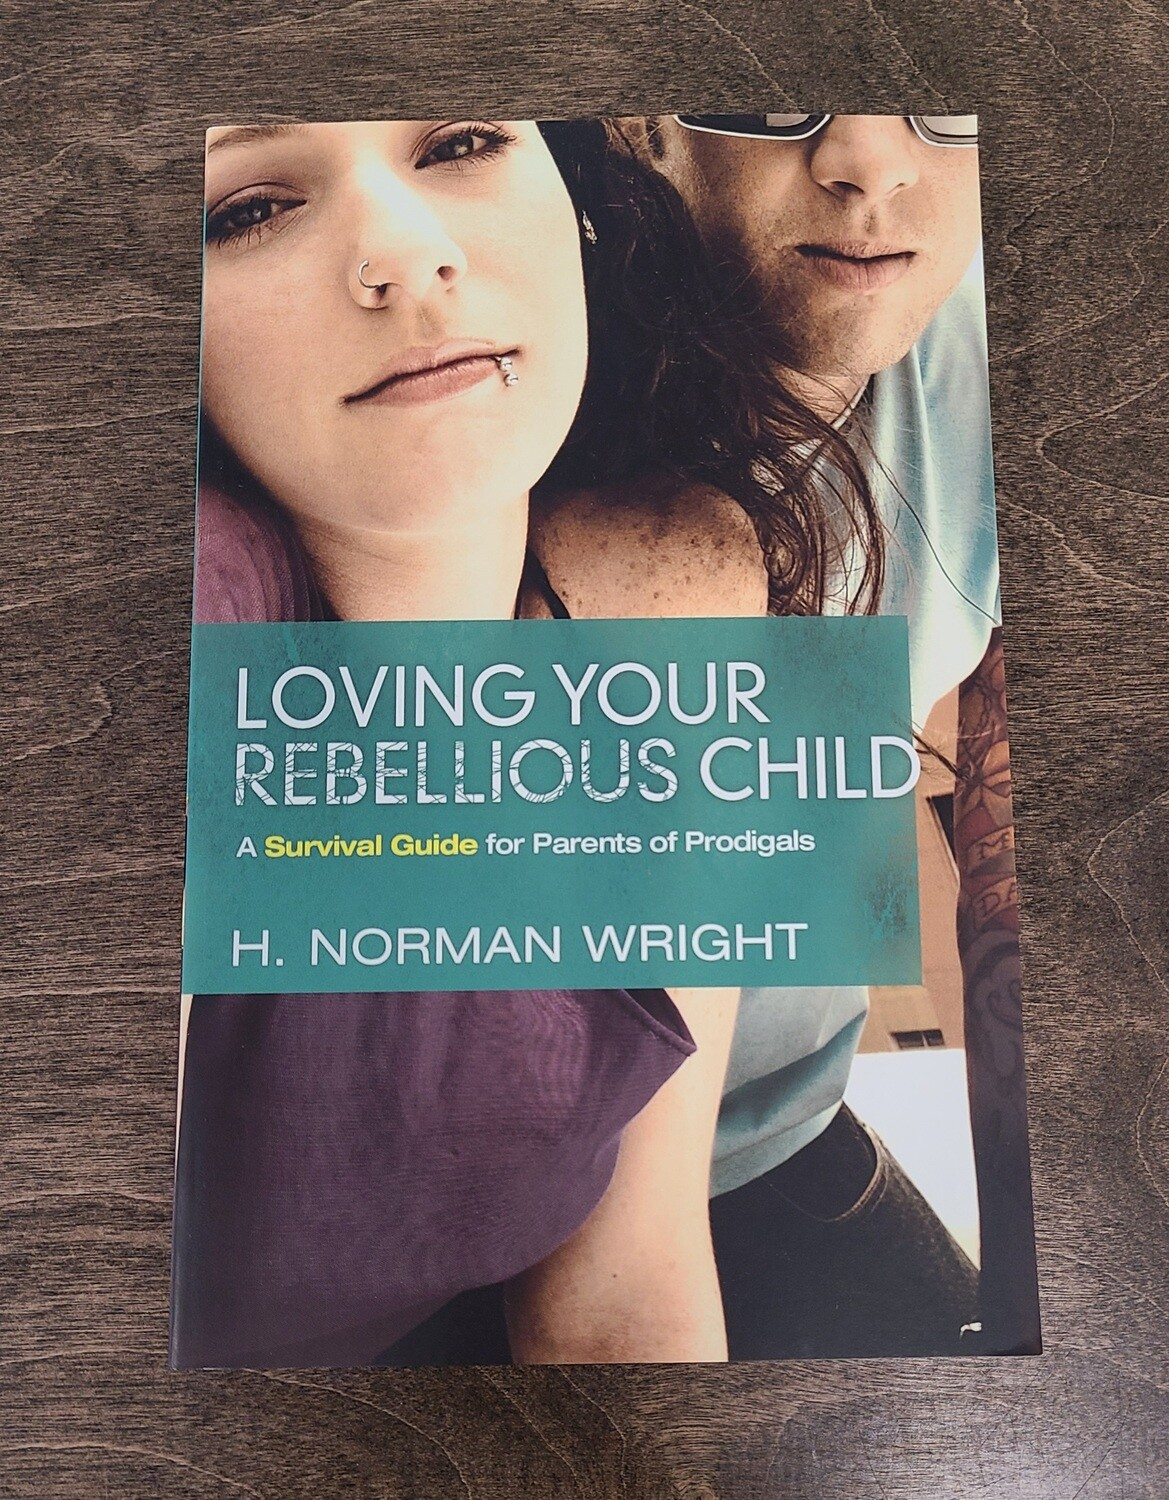 Loving Your Rebellious Child by H. Norman Wright